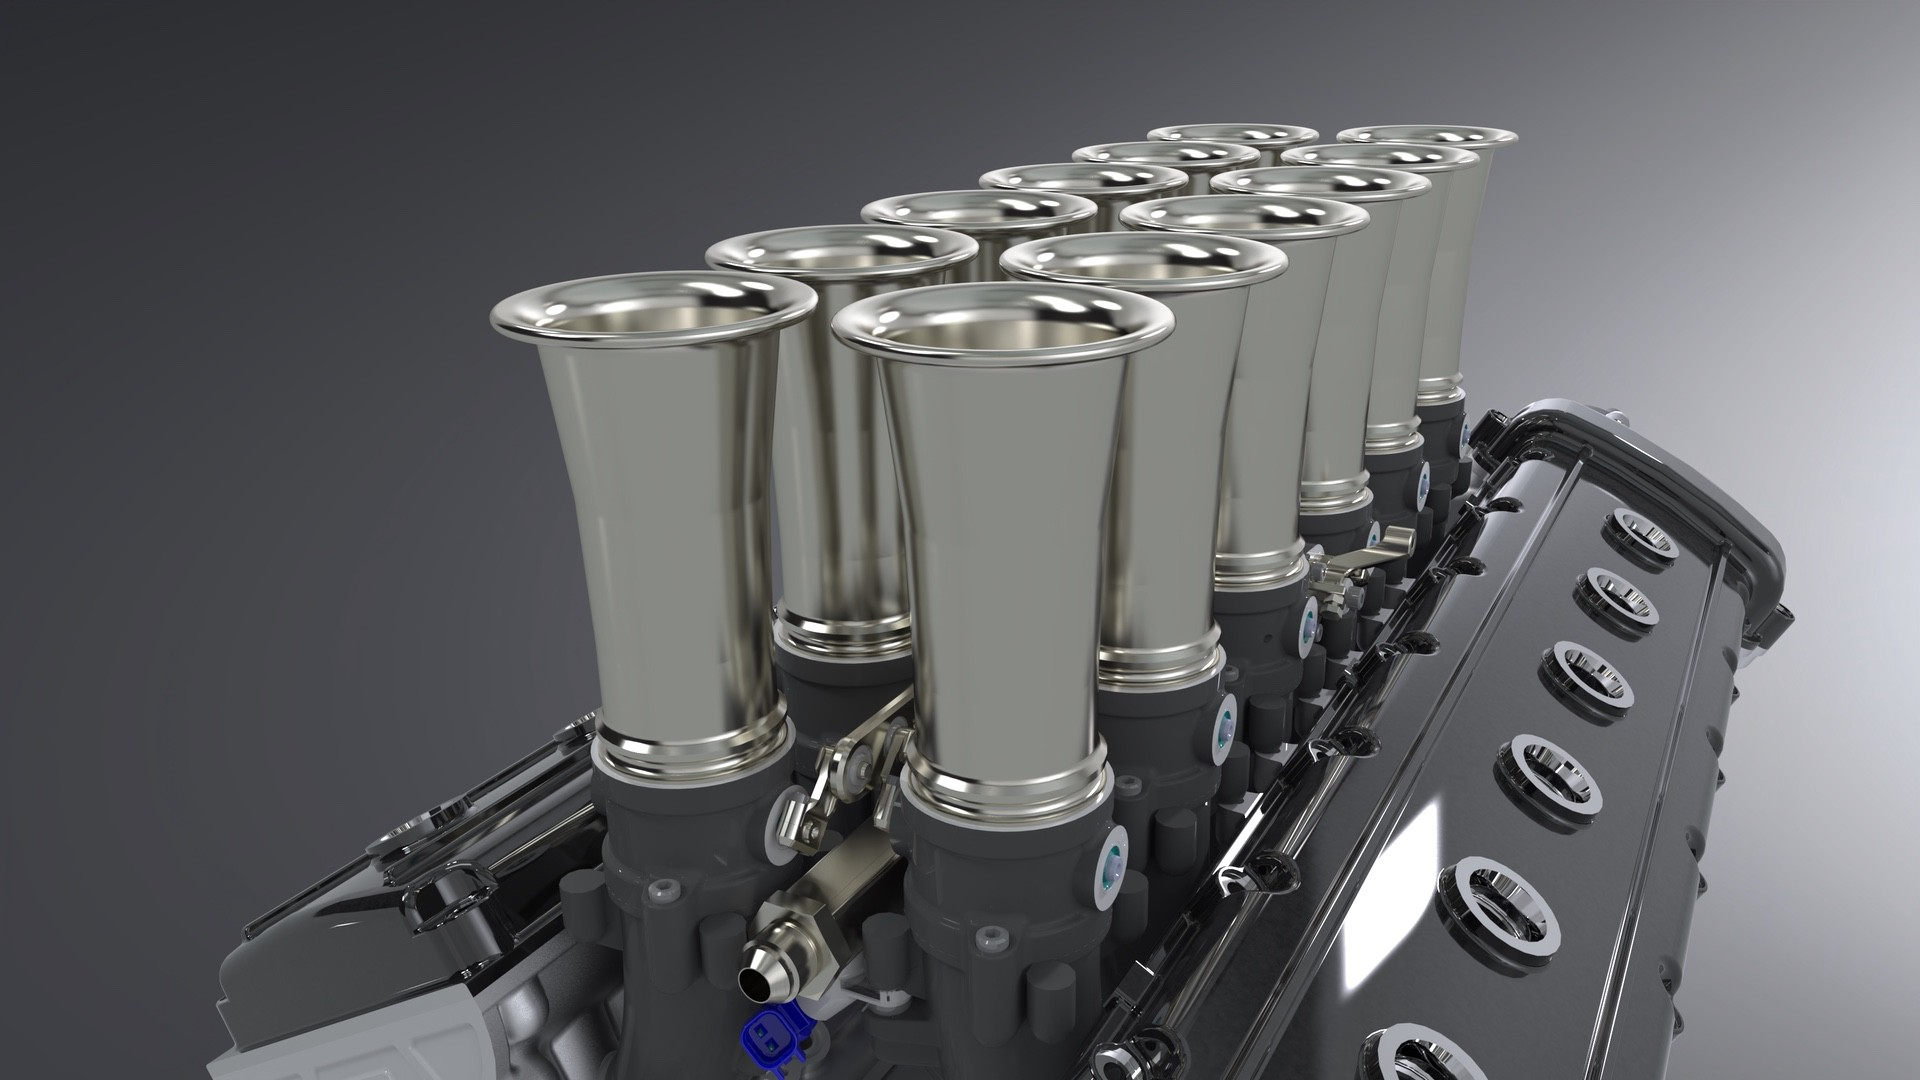 4.-GTO-Engineering-Squalo-V12-engine-close-up-trumpets-covers-on-dark-background